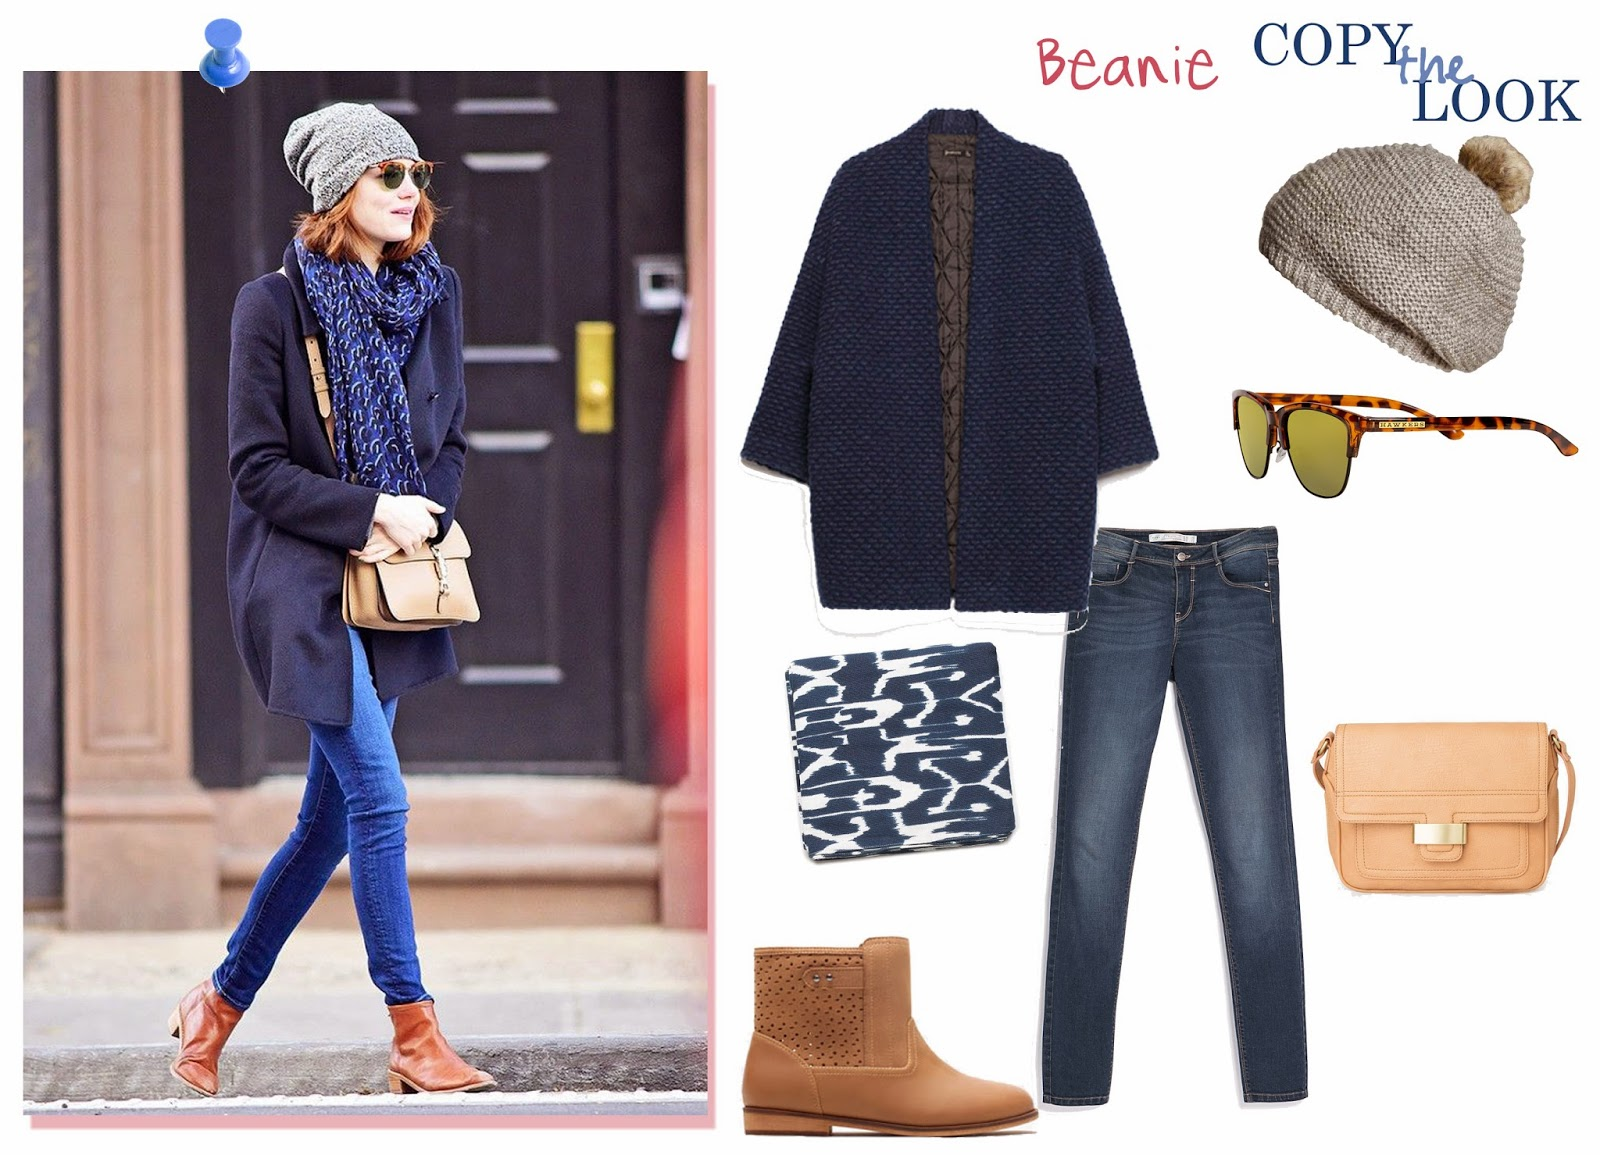 photo-inspiracion-street_style-beanie-copiar_look